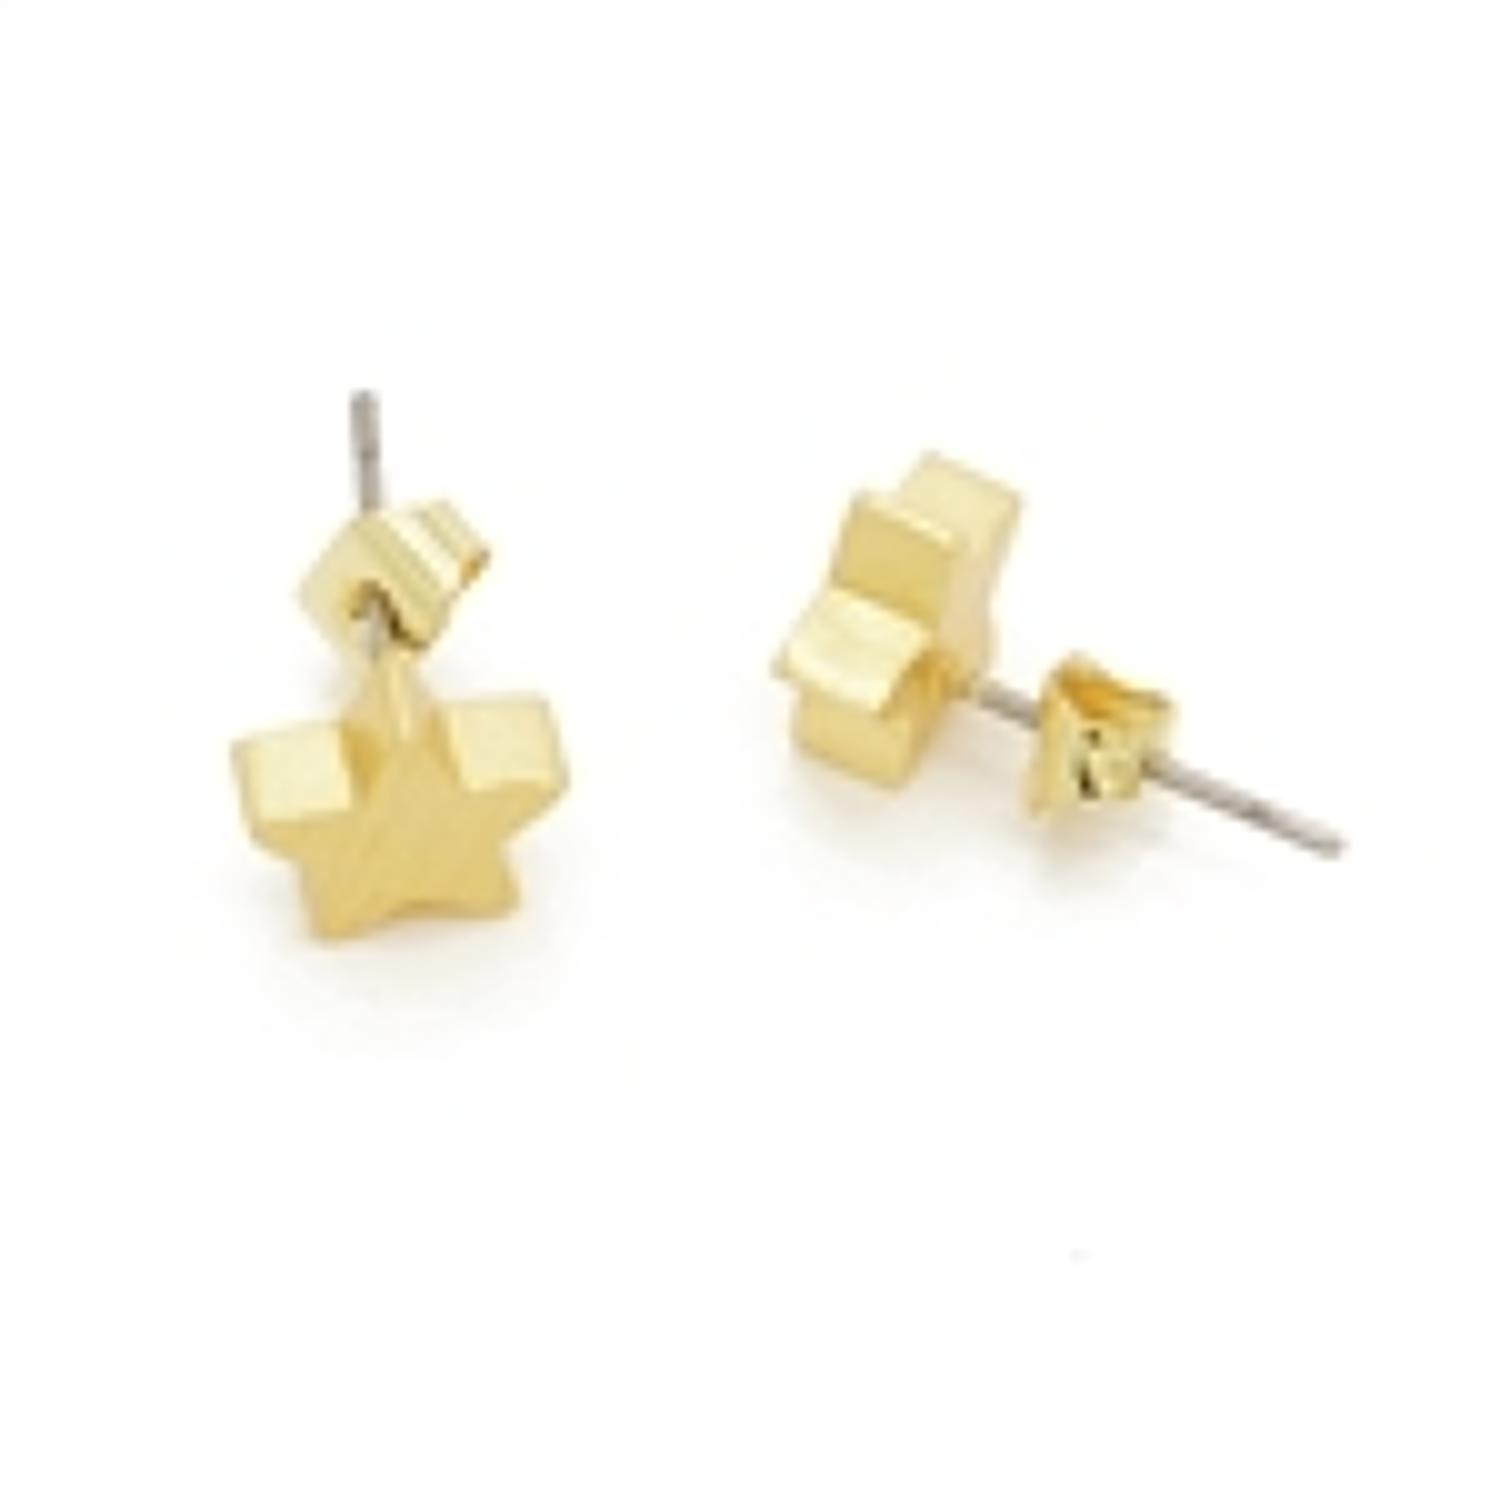 White Leaf - small star earrings in 20k matt gold plate